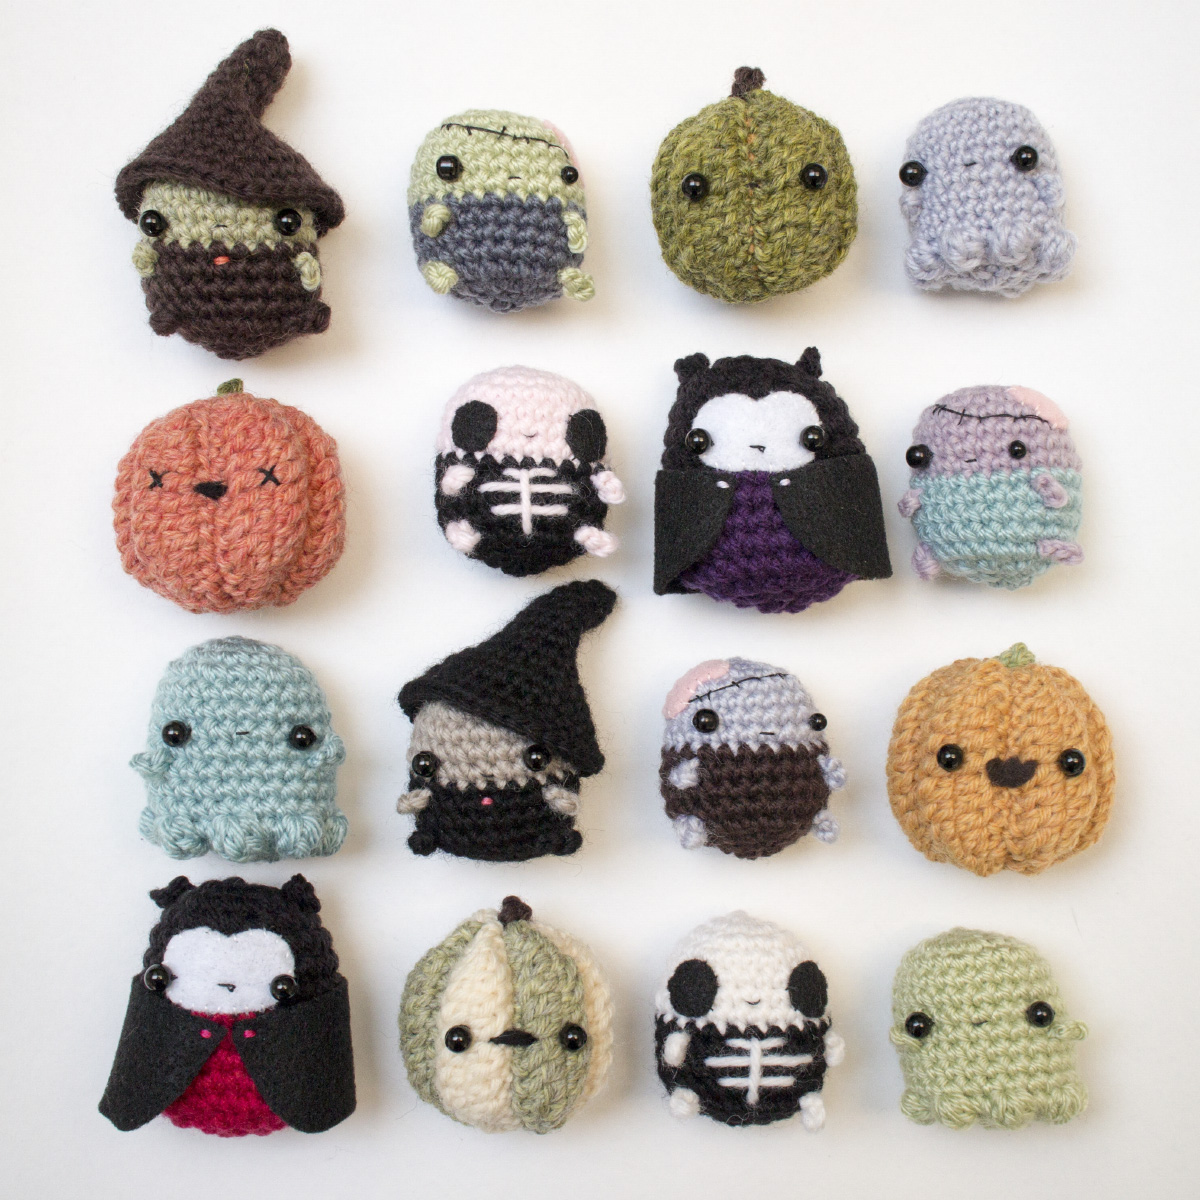 Halloween amigurumi pattern bundle